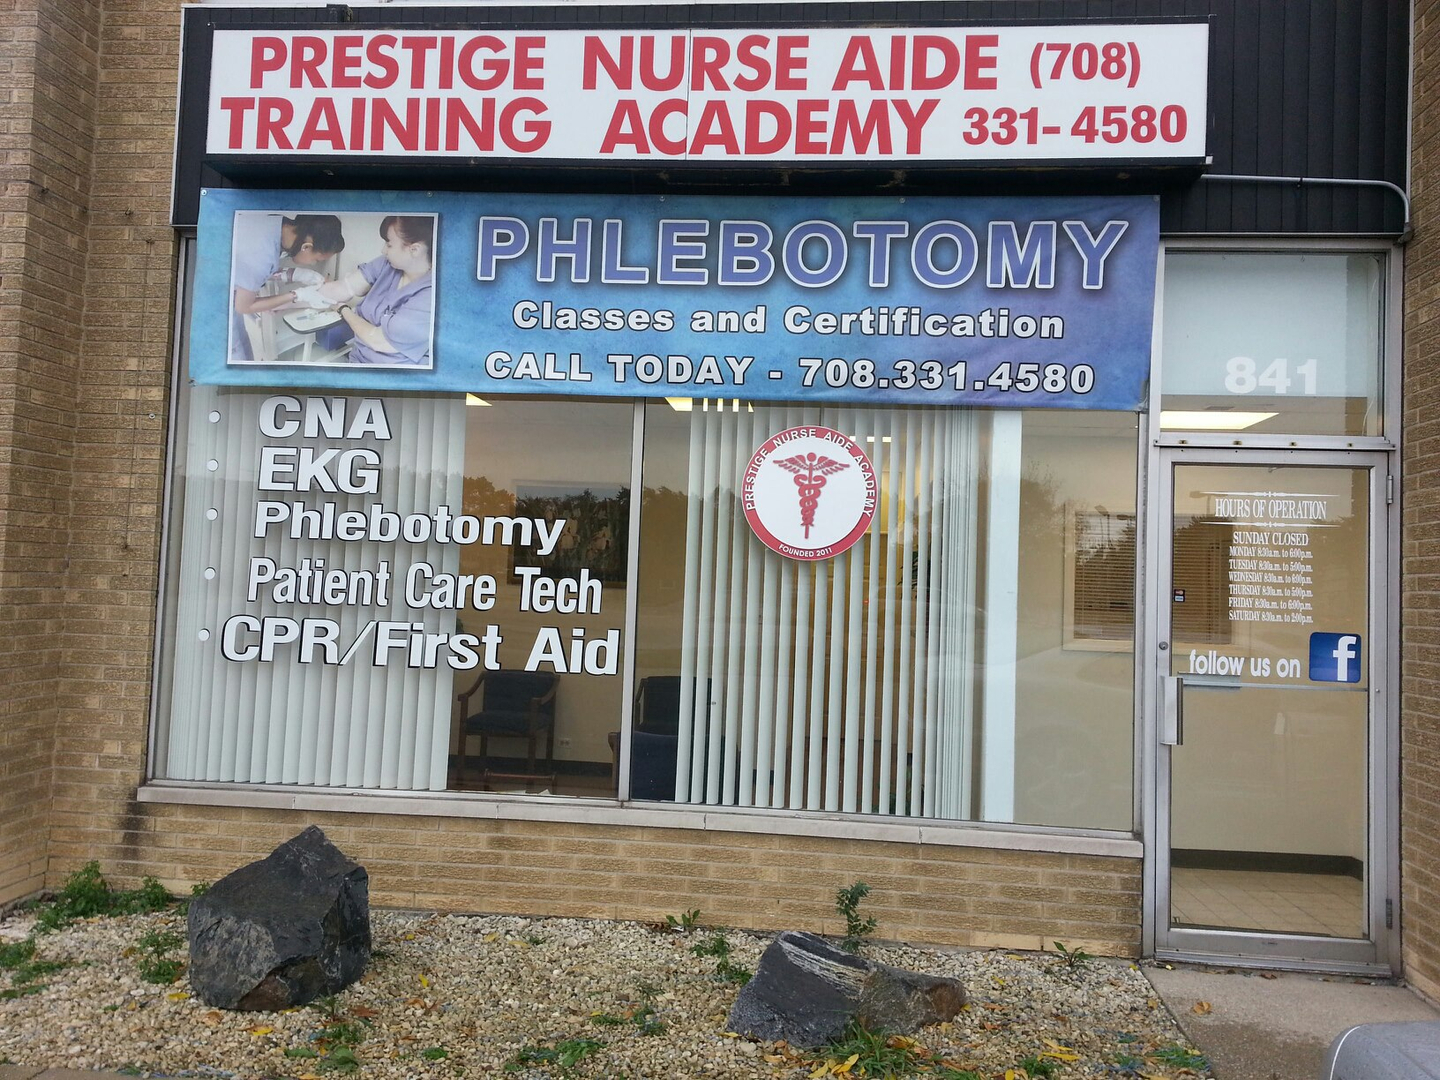 Prestige Nurse Aide Training Academy Cna Classes Phlebotomy